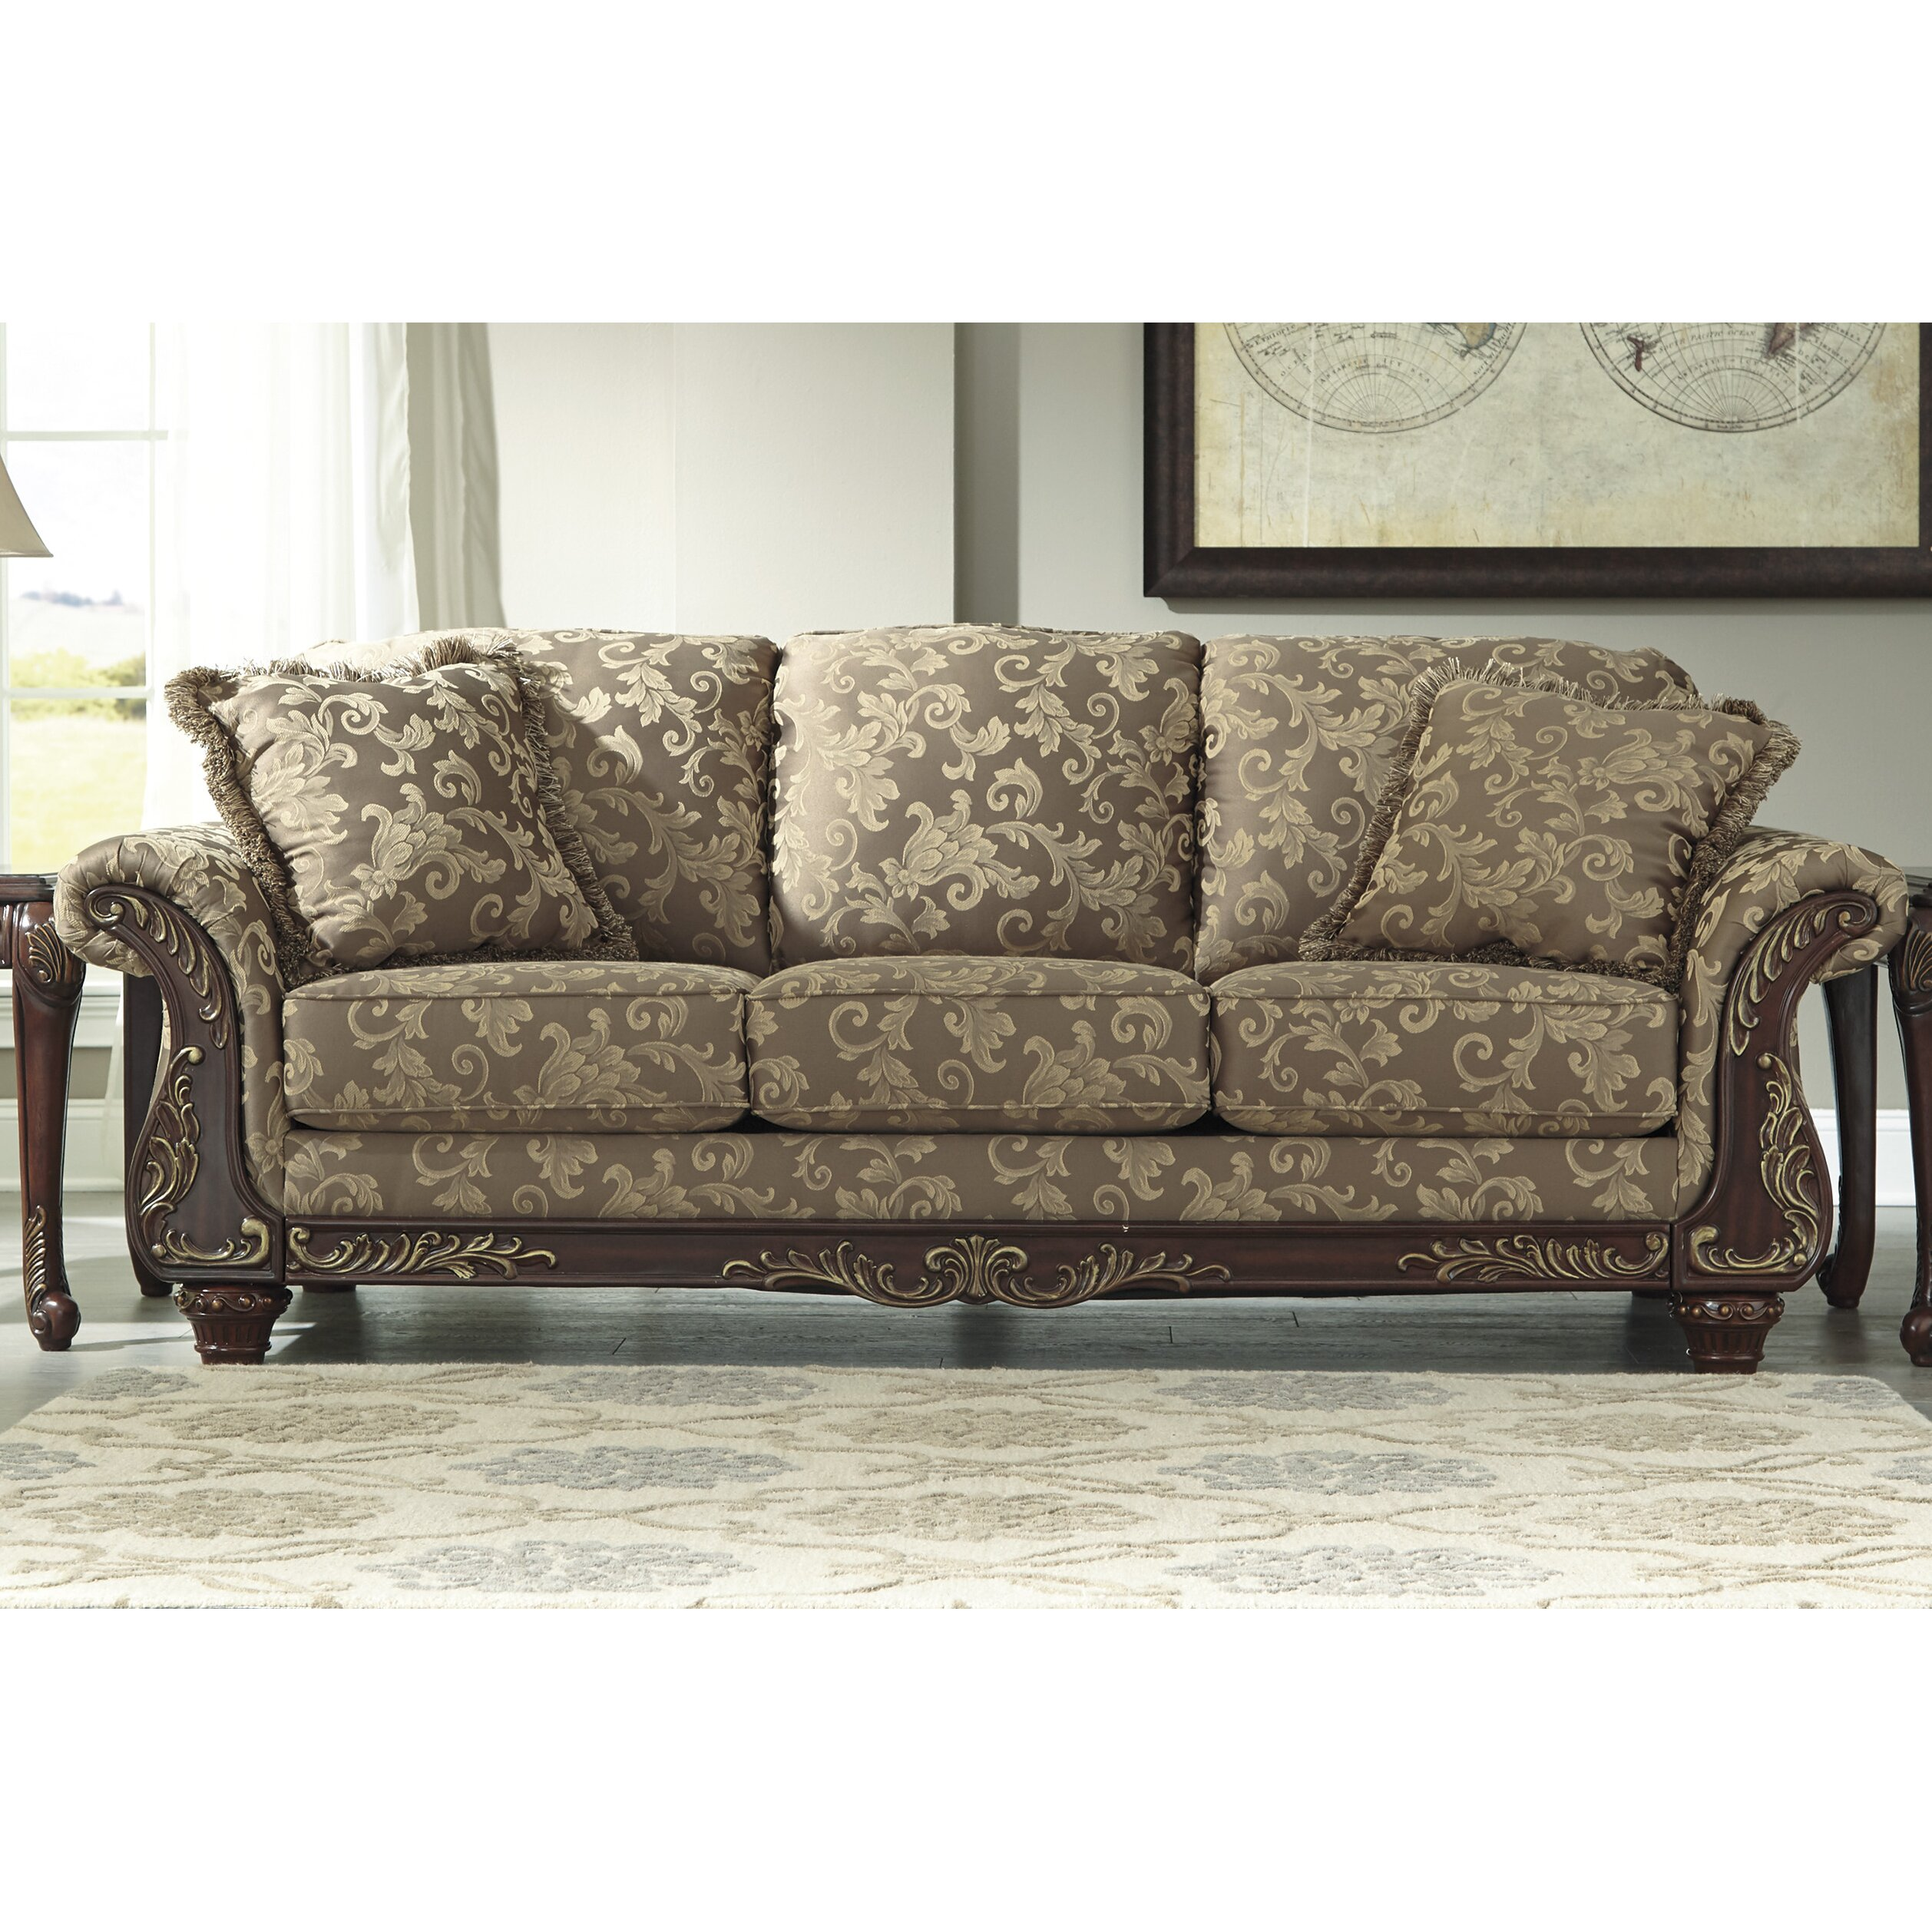 Ashley Signature Collection: Signature Design By Ashley Irwindale Living Room